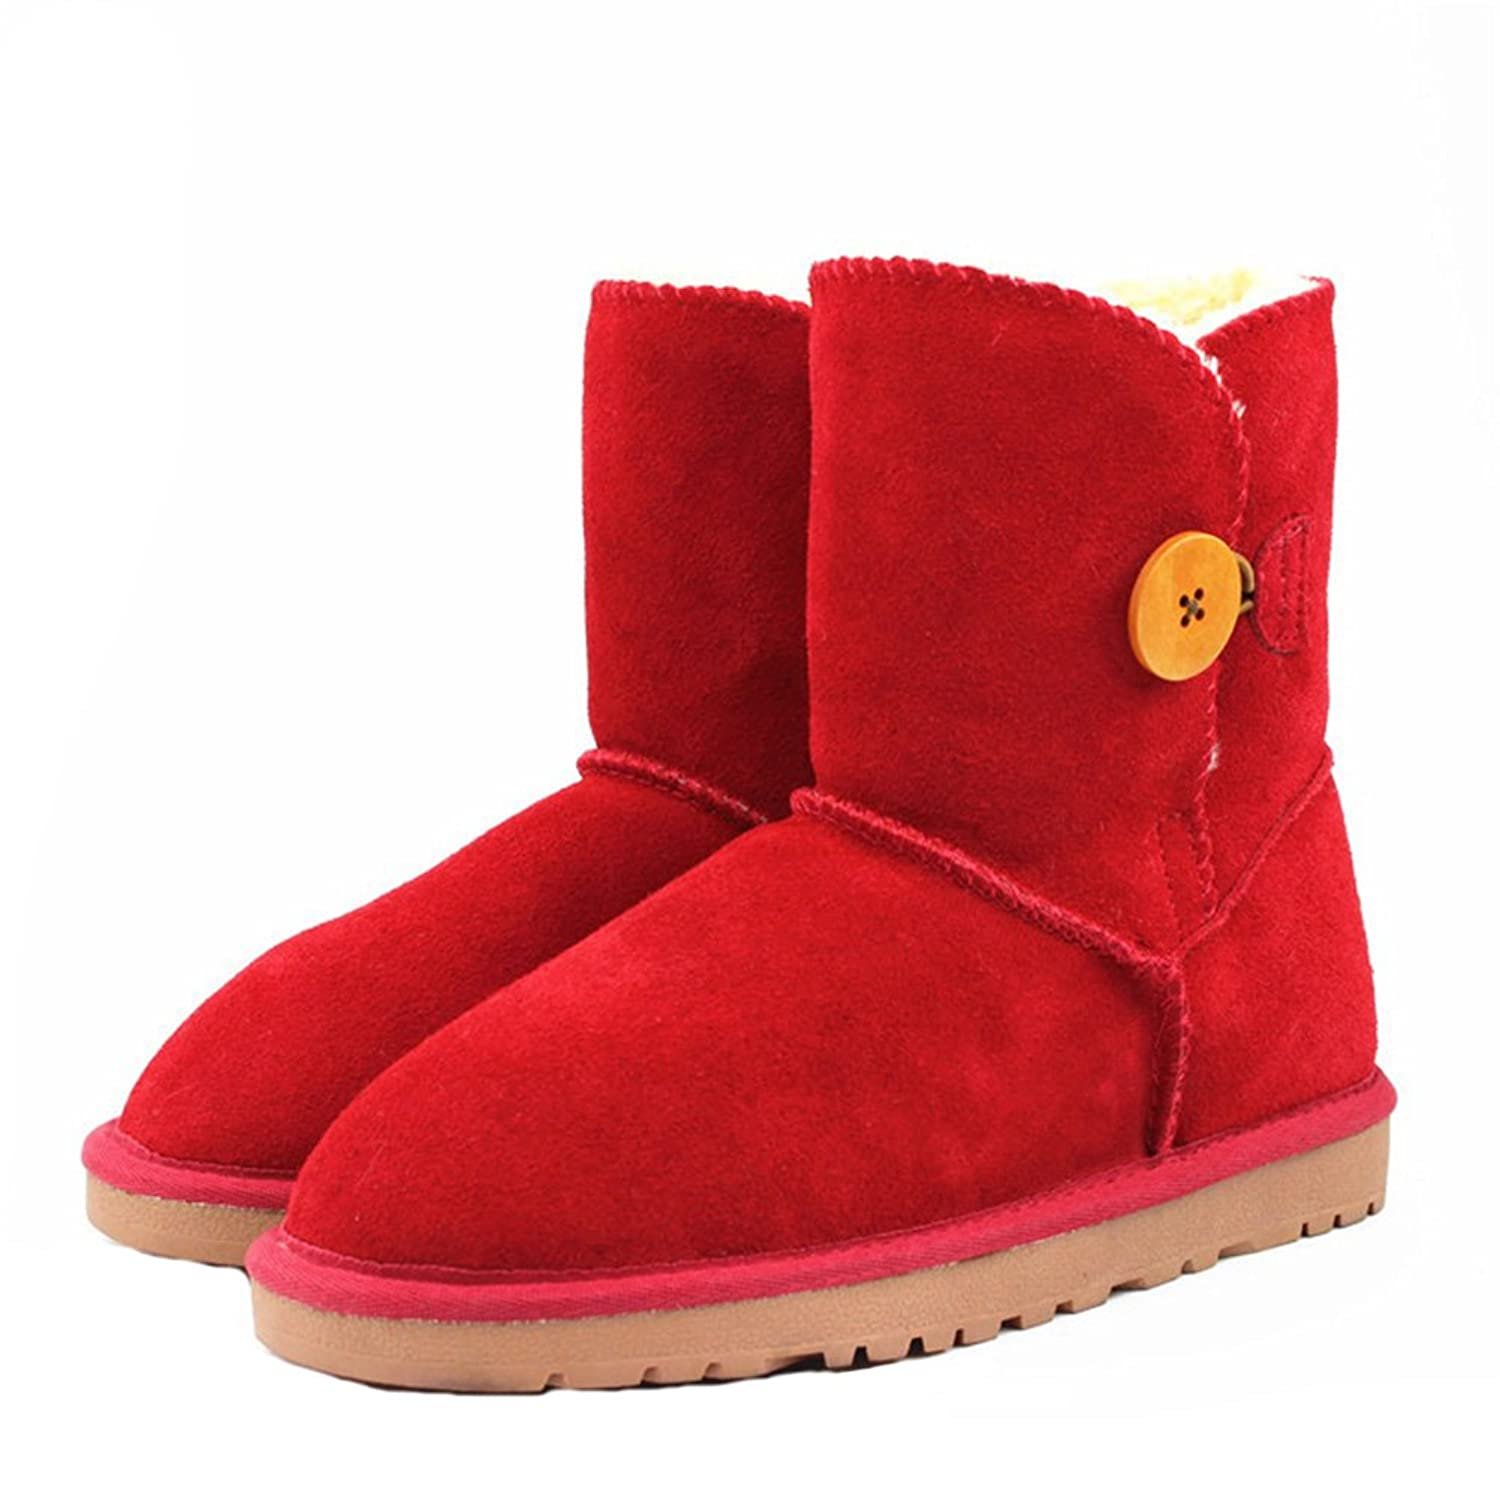 Womens Snow Boots Buckle Mid Calf Leather Boots